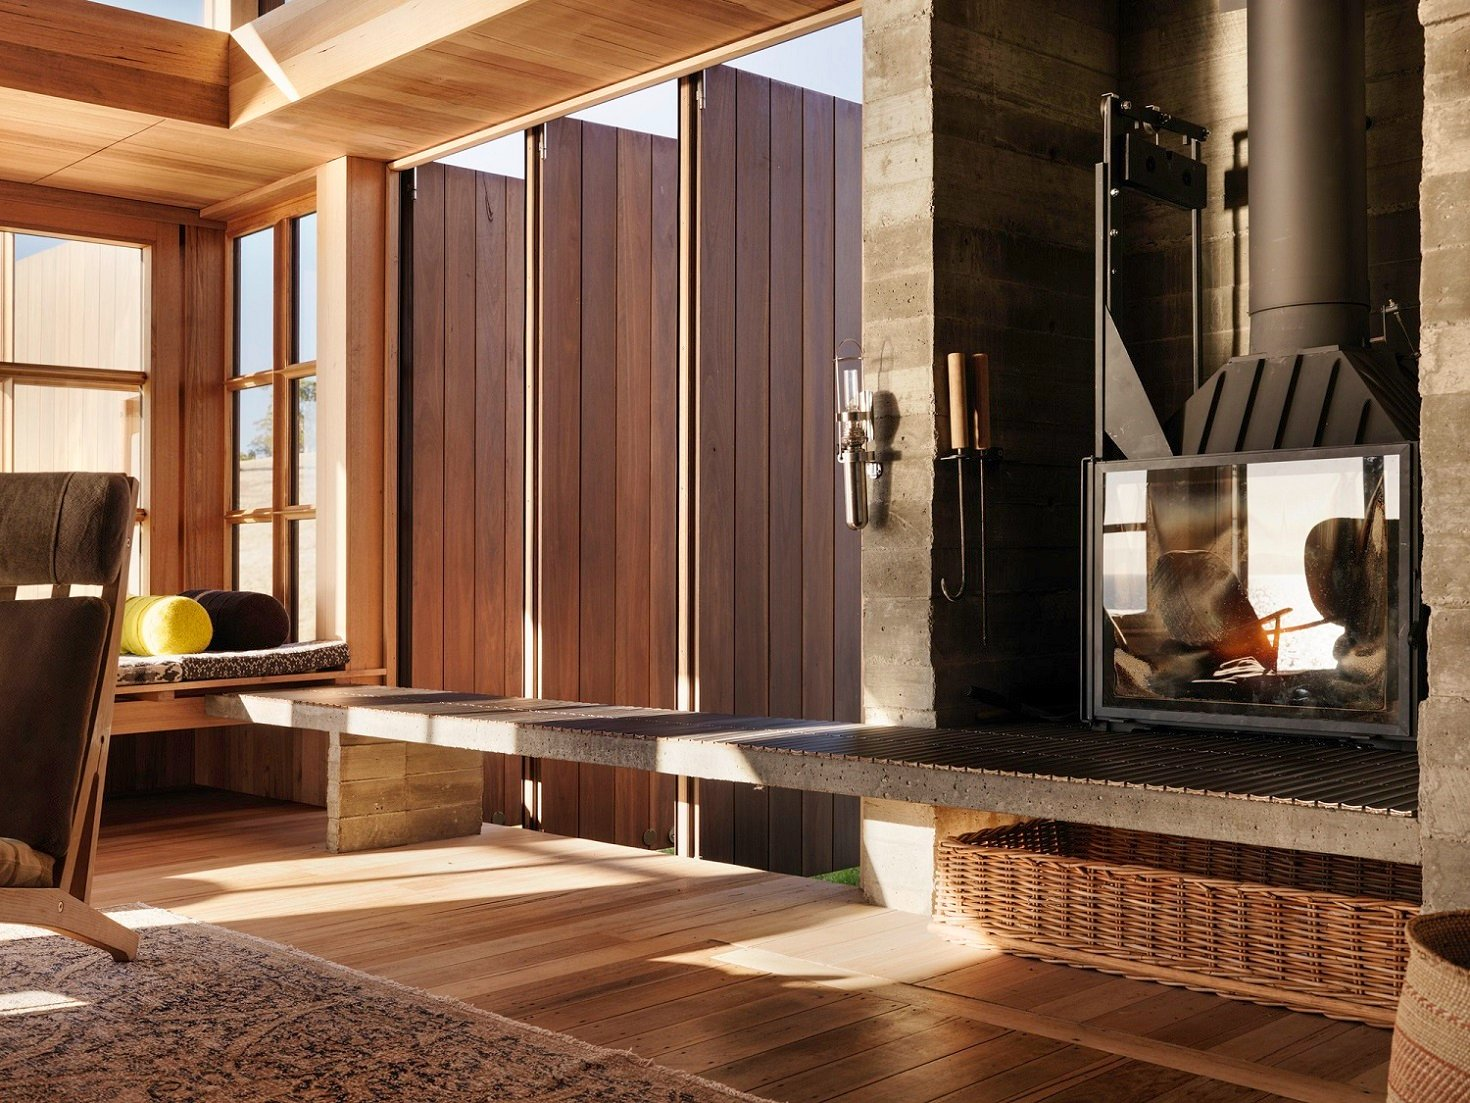 Shuttered windows allow the space to be responsive to weather and habitation Trevor Mein